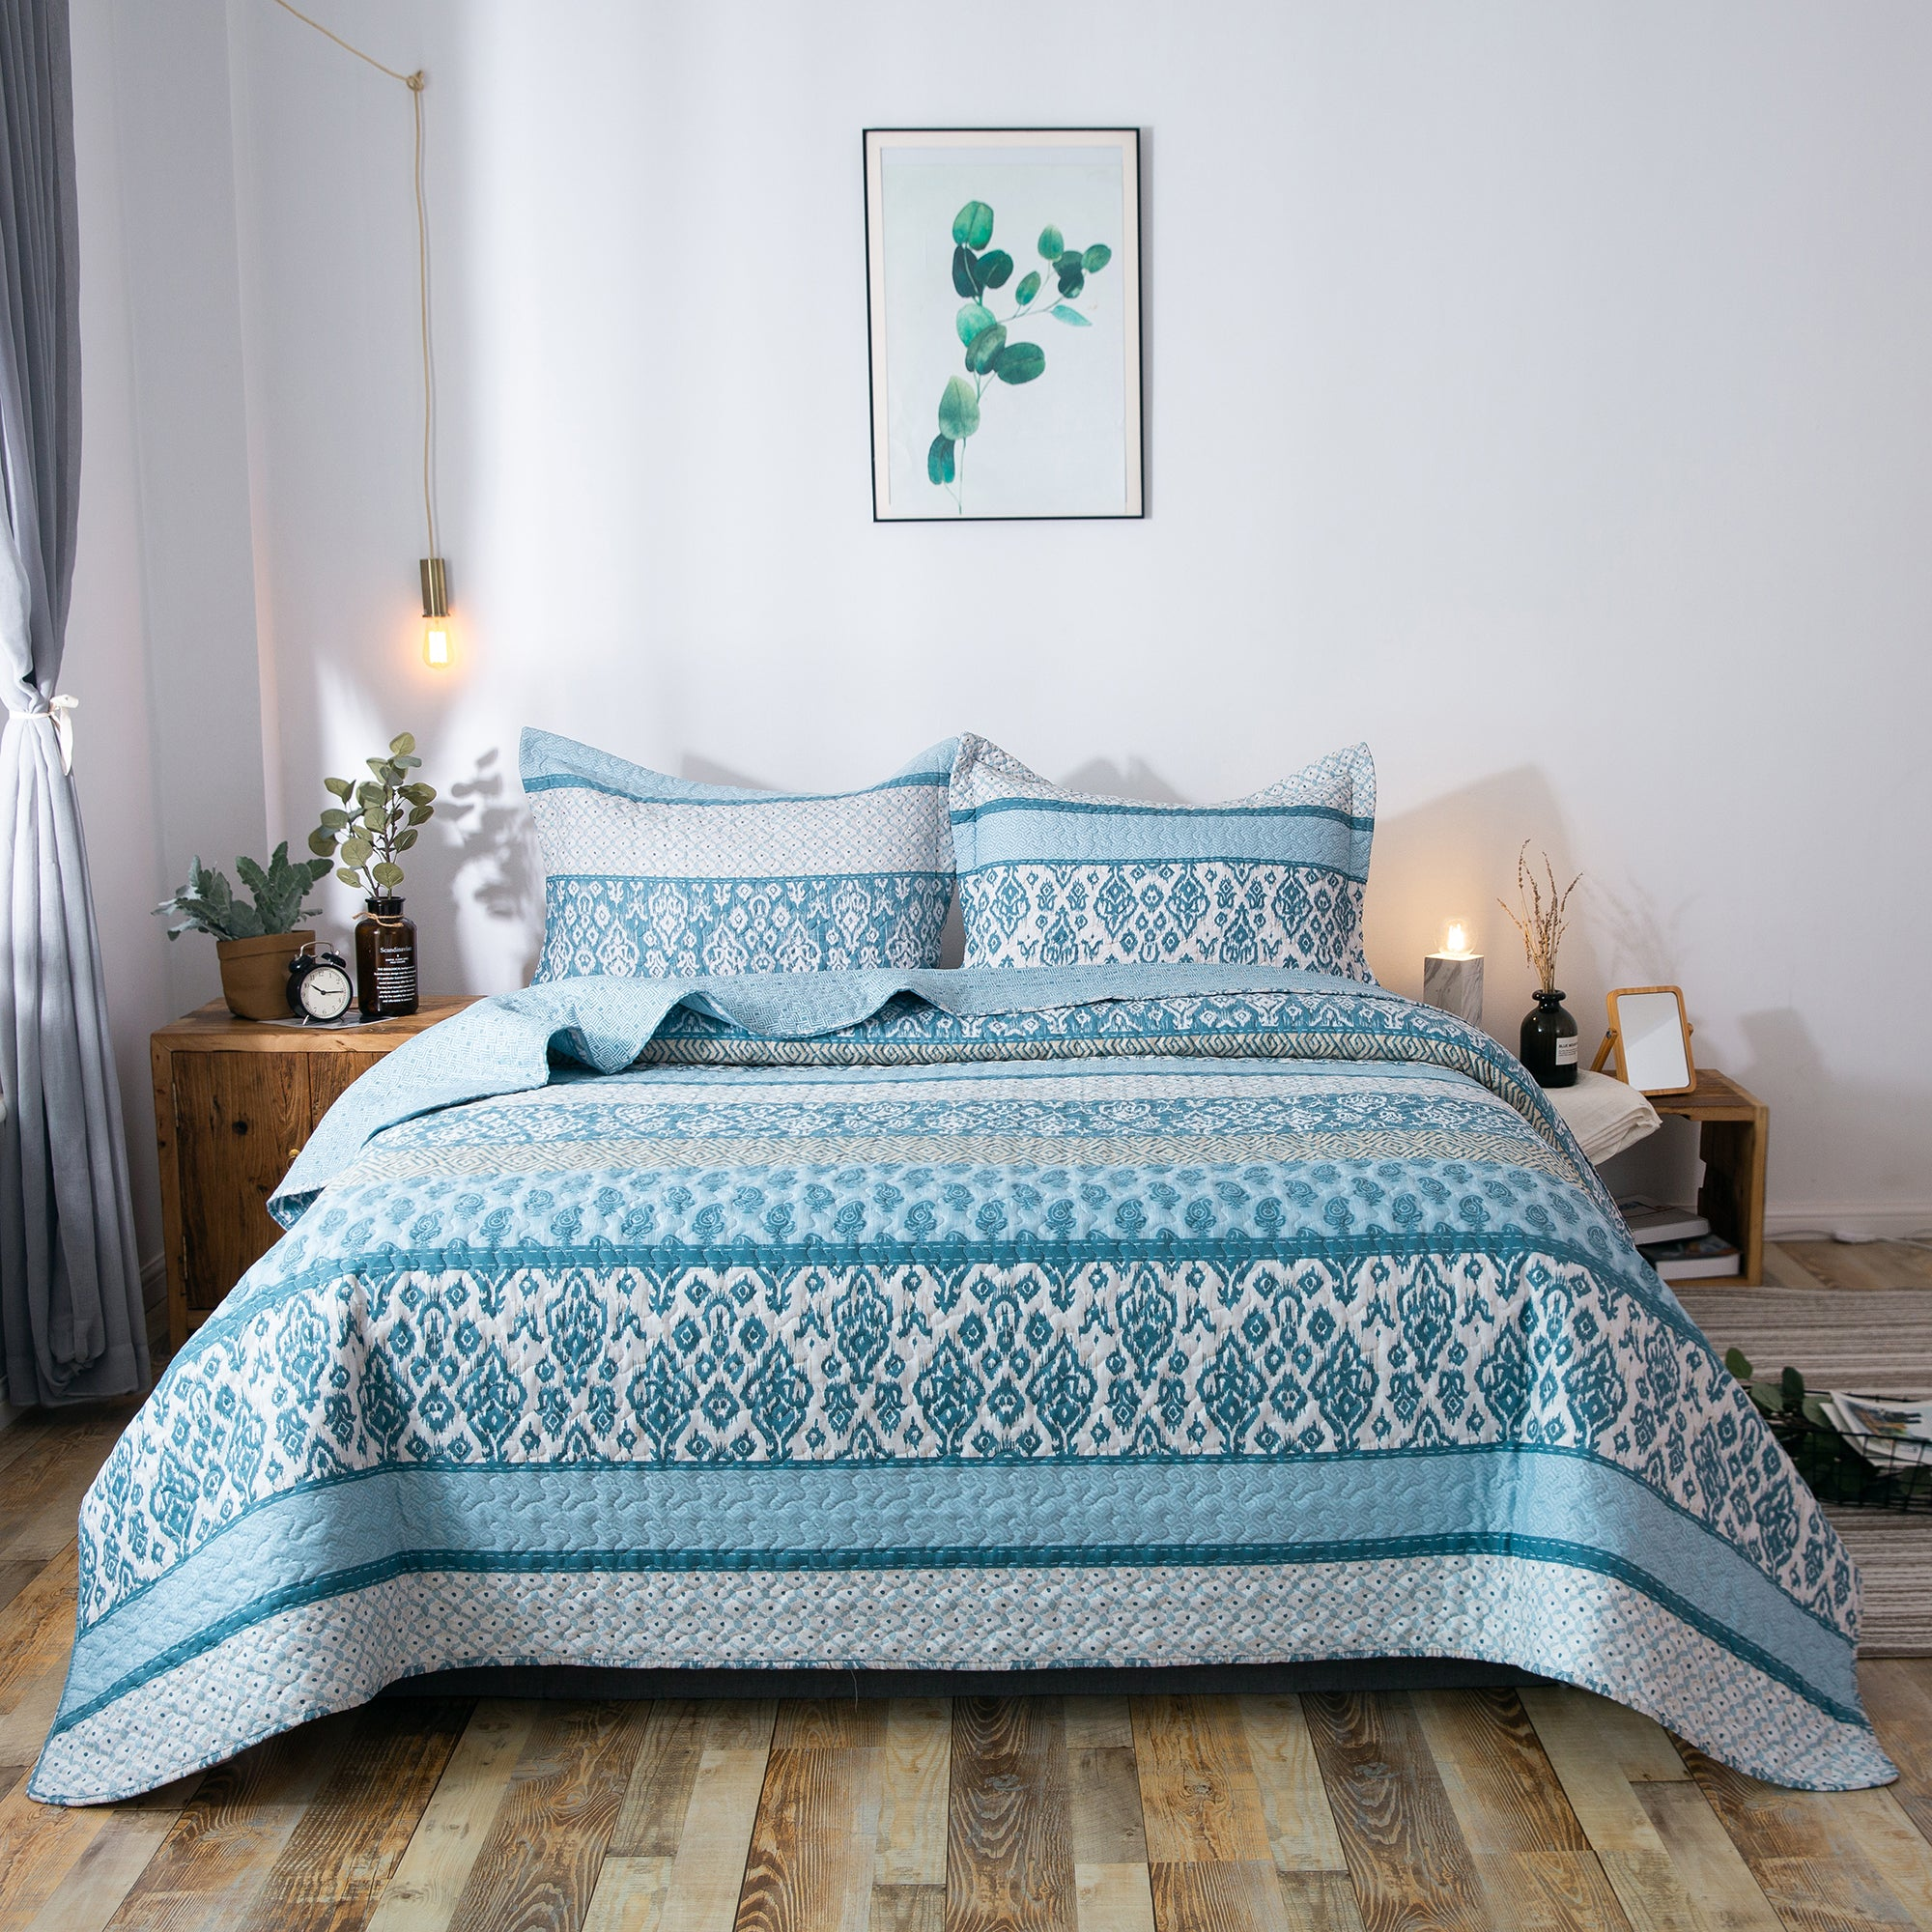 Kasentex Chic Printed Pre-Washed Quilt Set. Softest Microfiber Fabric Frost Blue - Kasentex